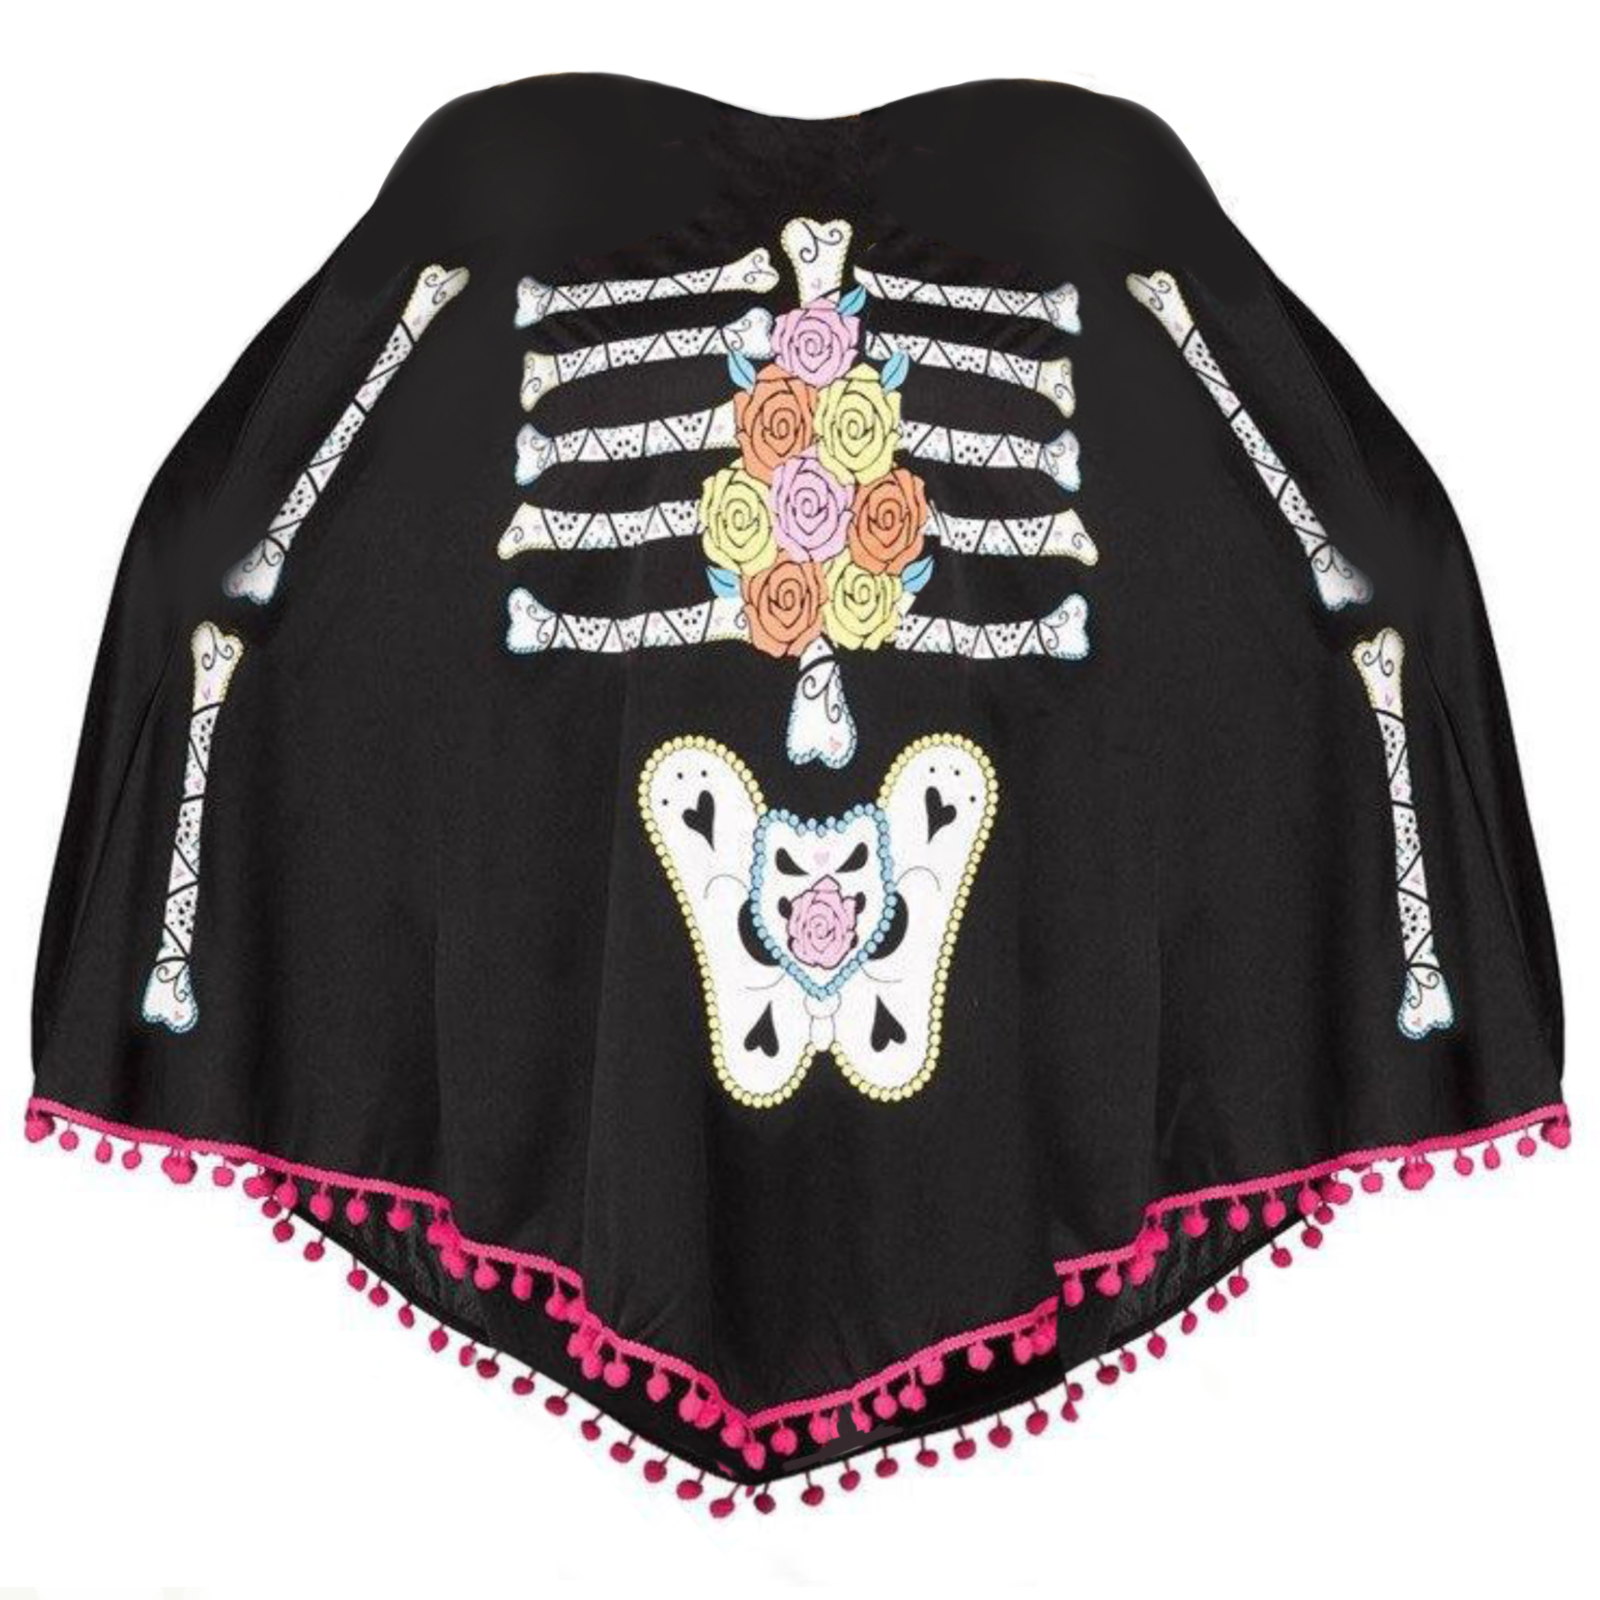 Day of the Dead Poncho Costume - Buy